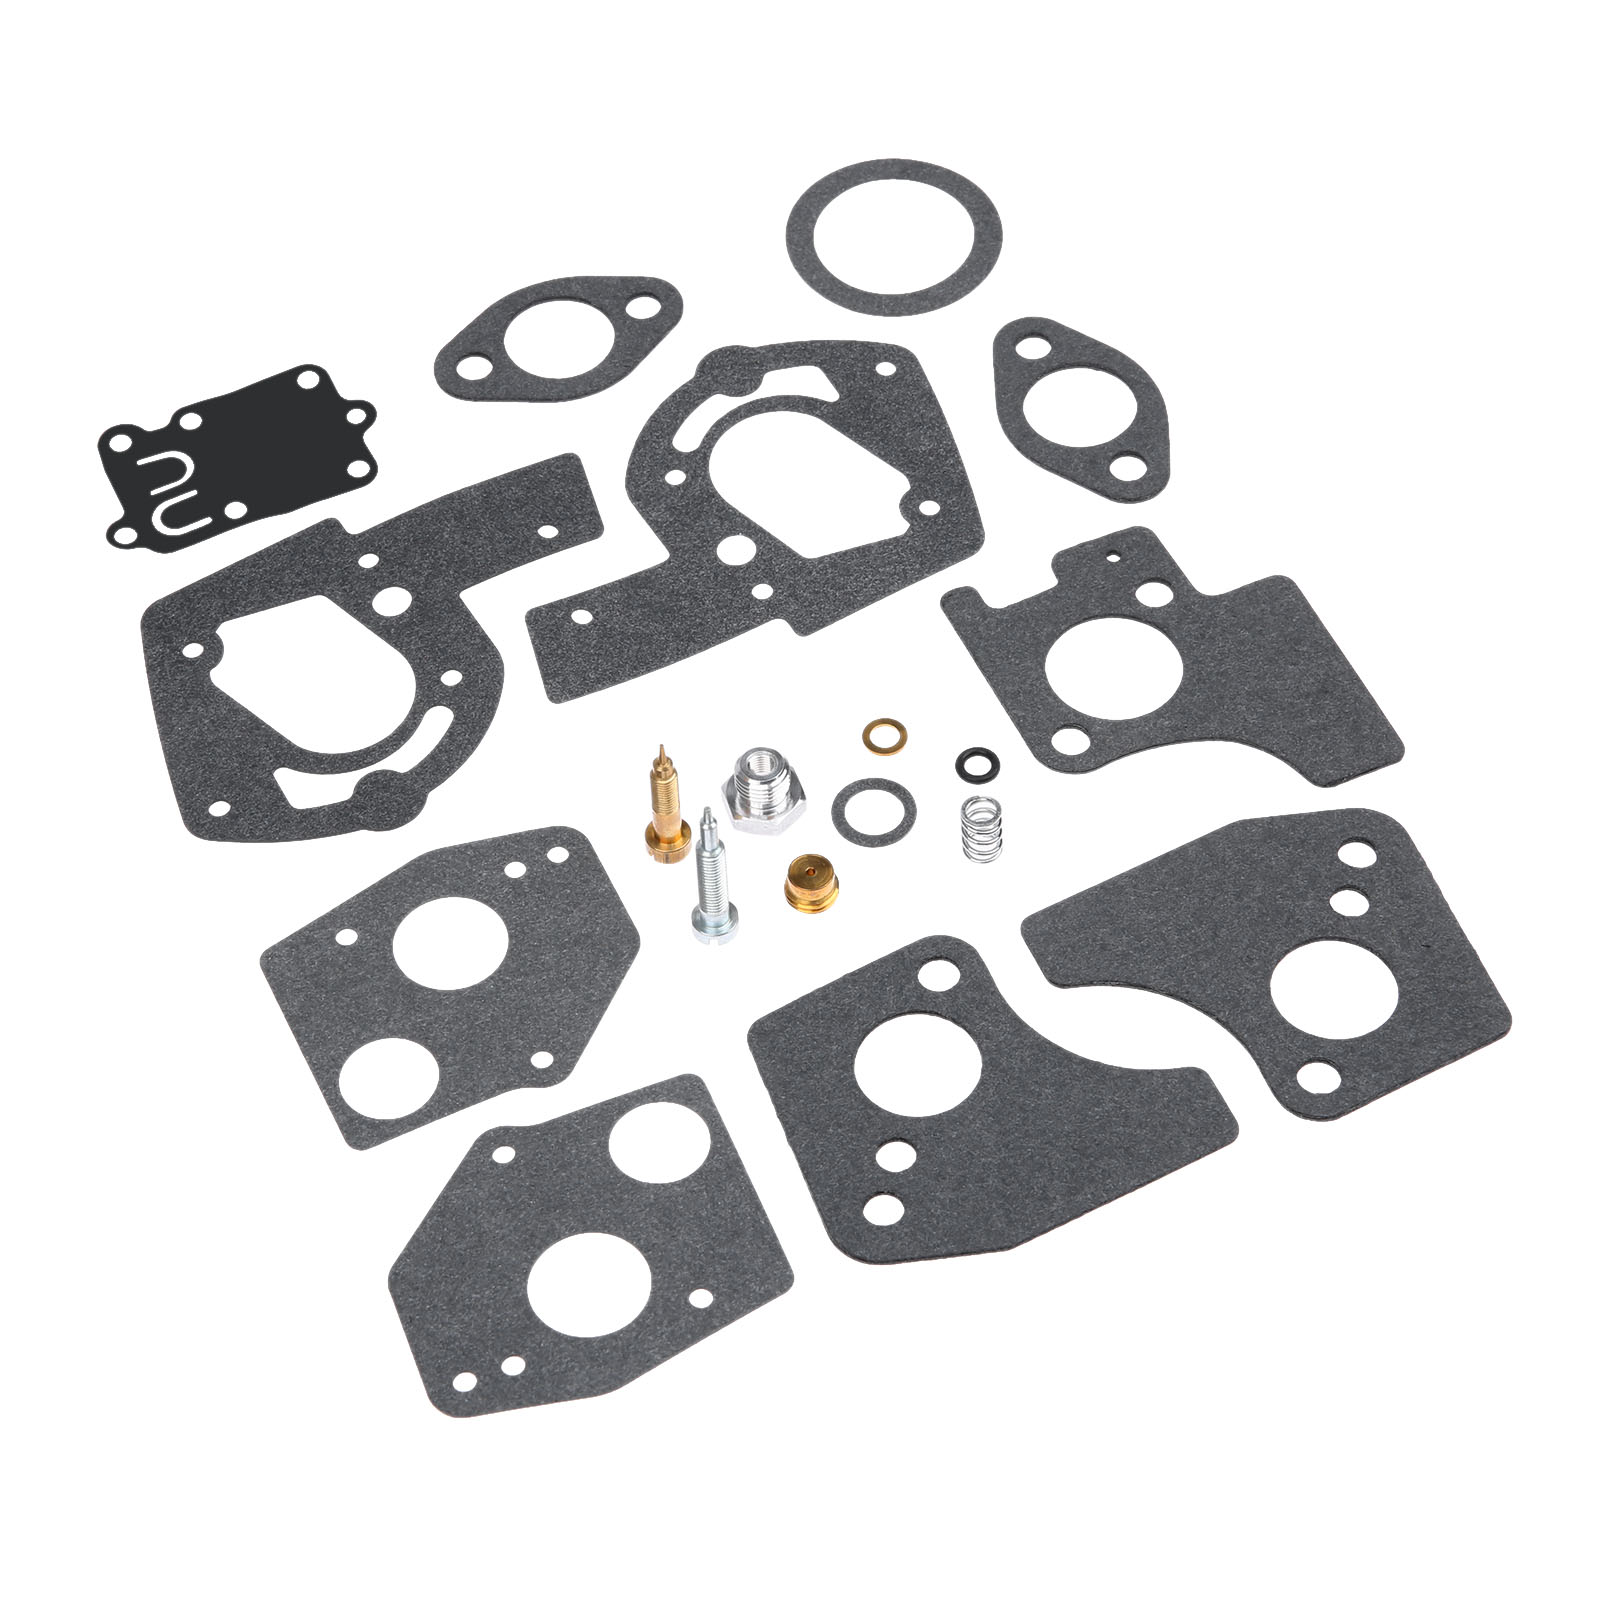 DRELD Replace Carburetor Overhaul Repair Kit Carb Rebuild Kit for Briggs & Stratton 495606 494624 Garden Power Tools